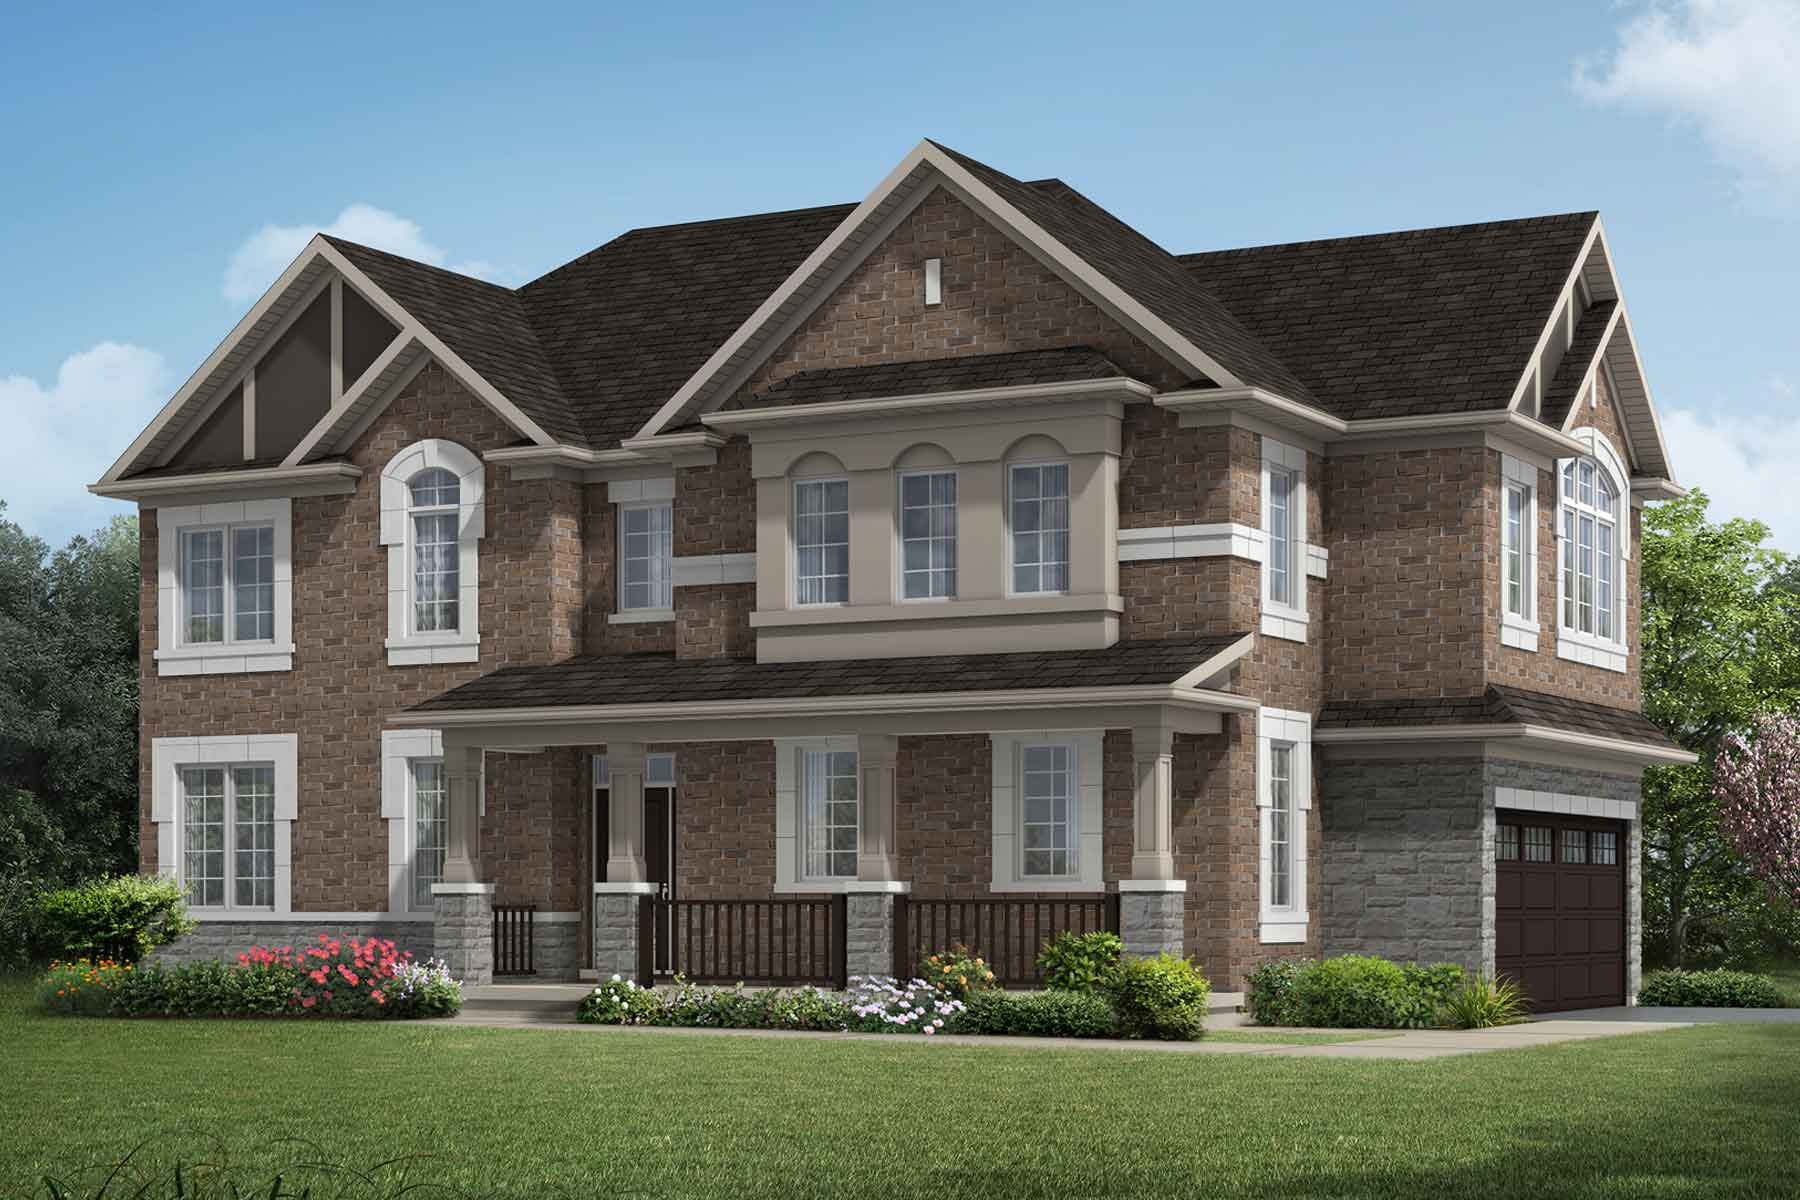 The Millbank End Plan traditional_southestates_courtlandcorner_main at Wildflower Crossing in Kitchener Ontario by Mattamy Homes